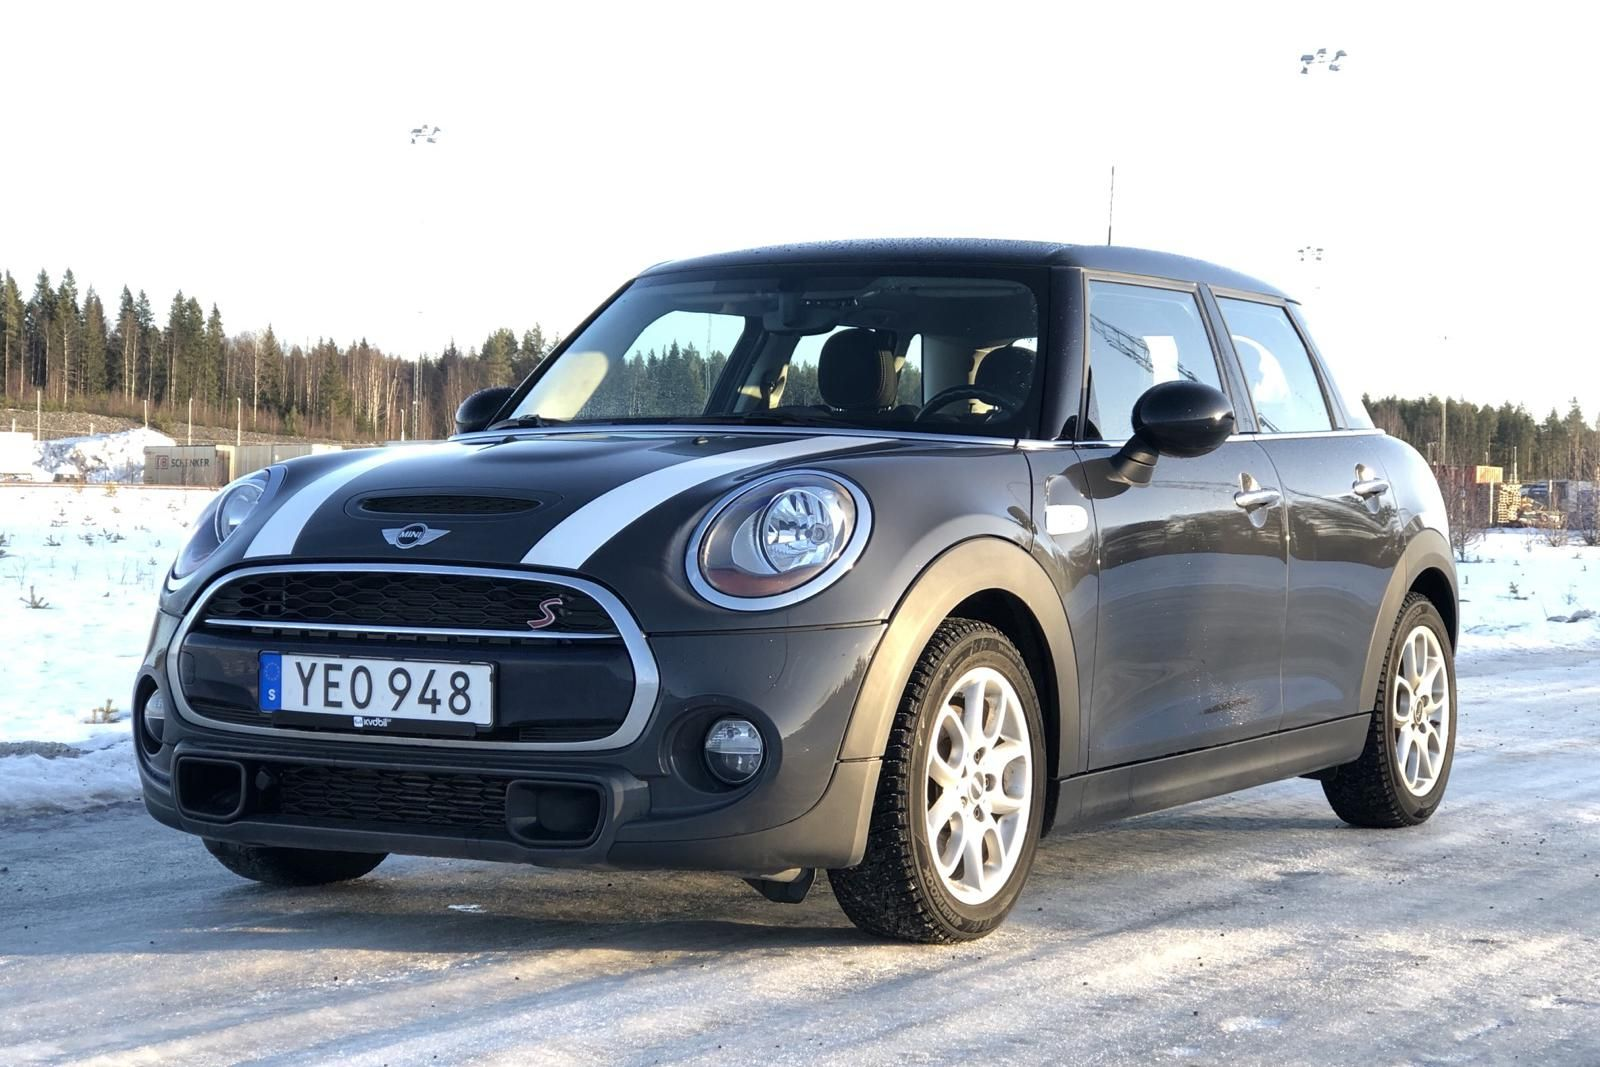 MINI Cooper S Luke 5dr (192hk)